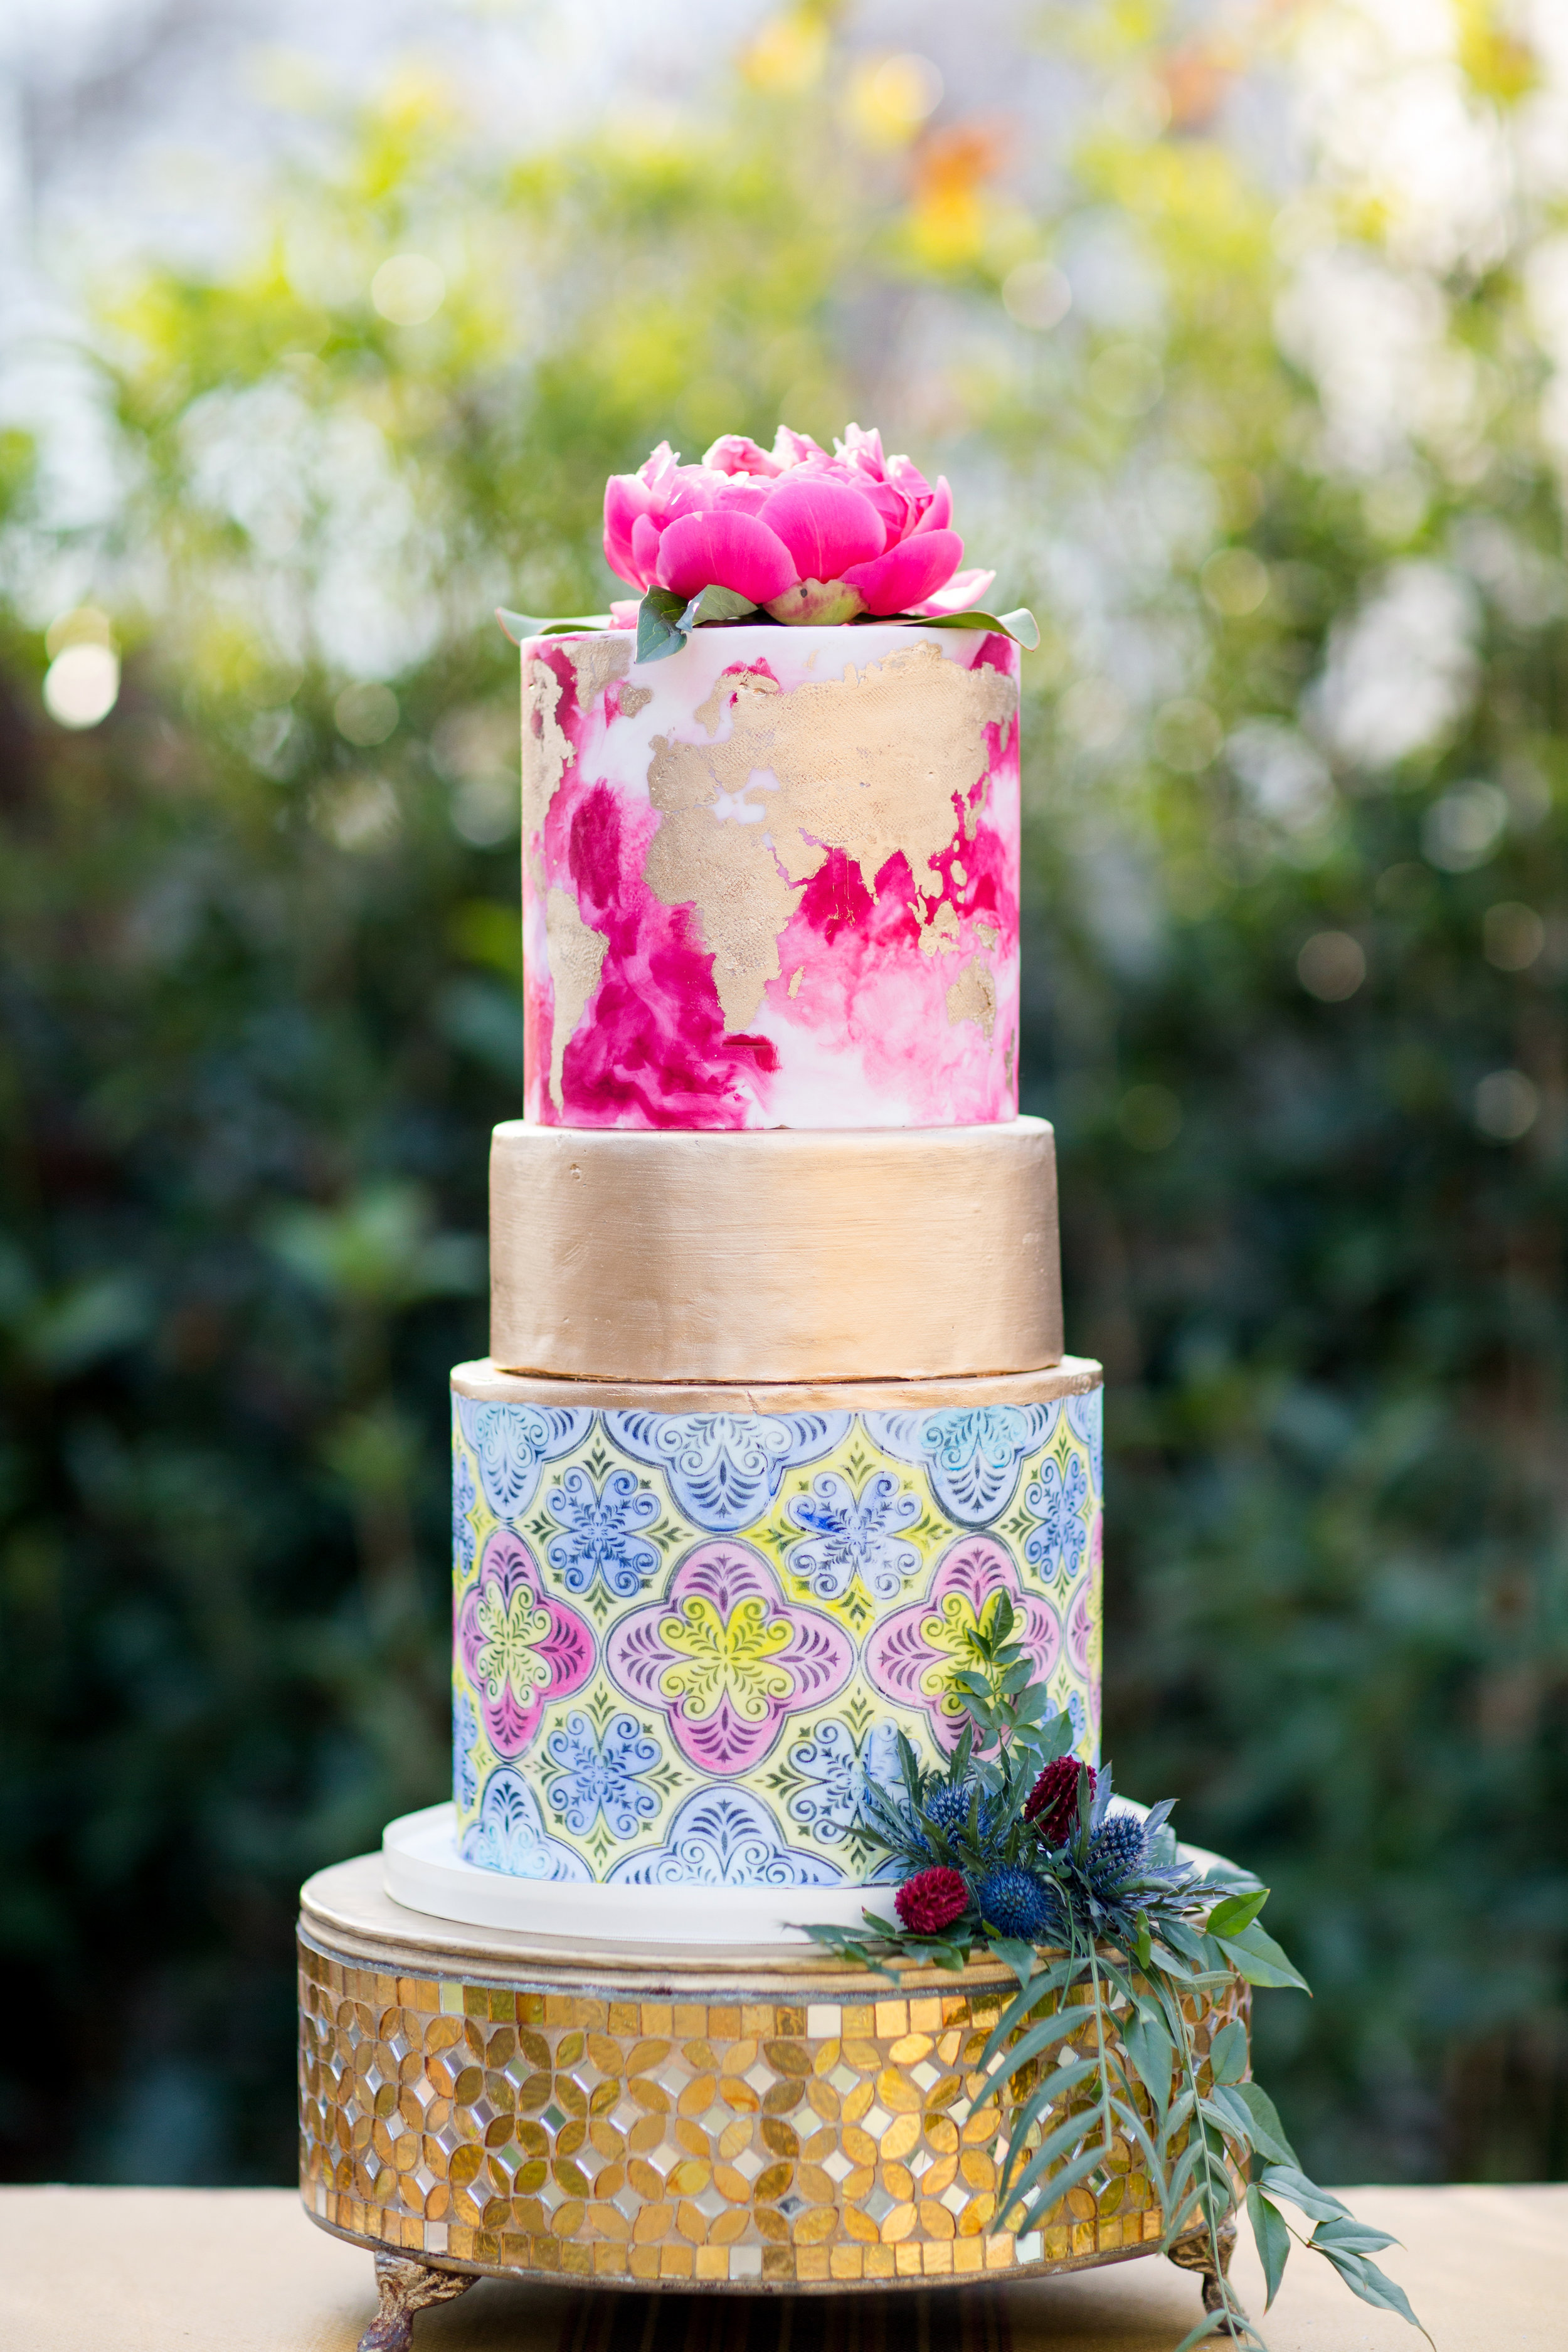 Watercolor and stenciled fondant cake